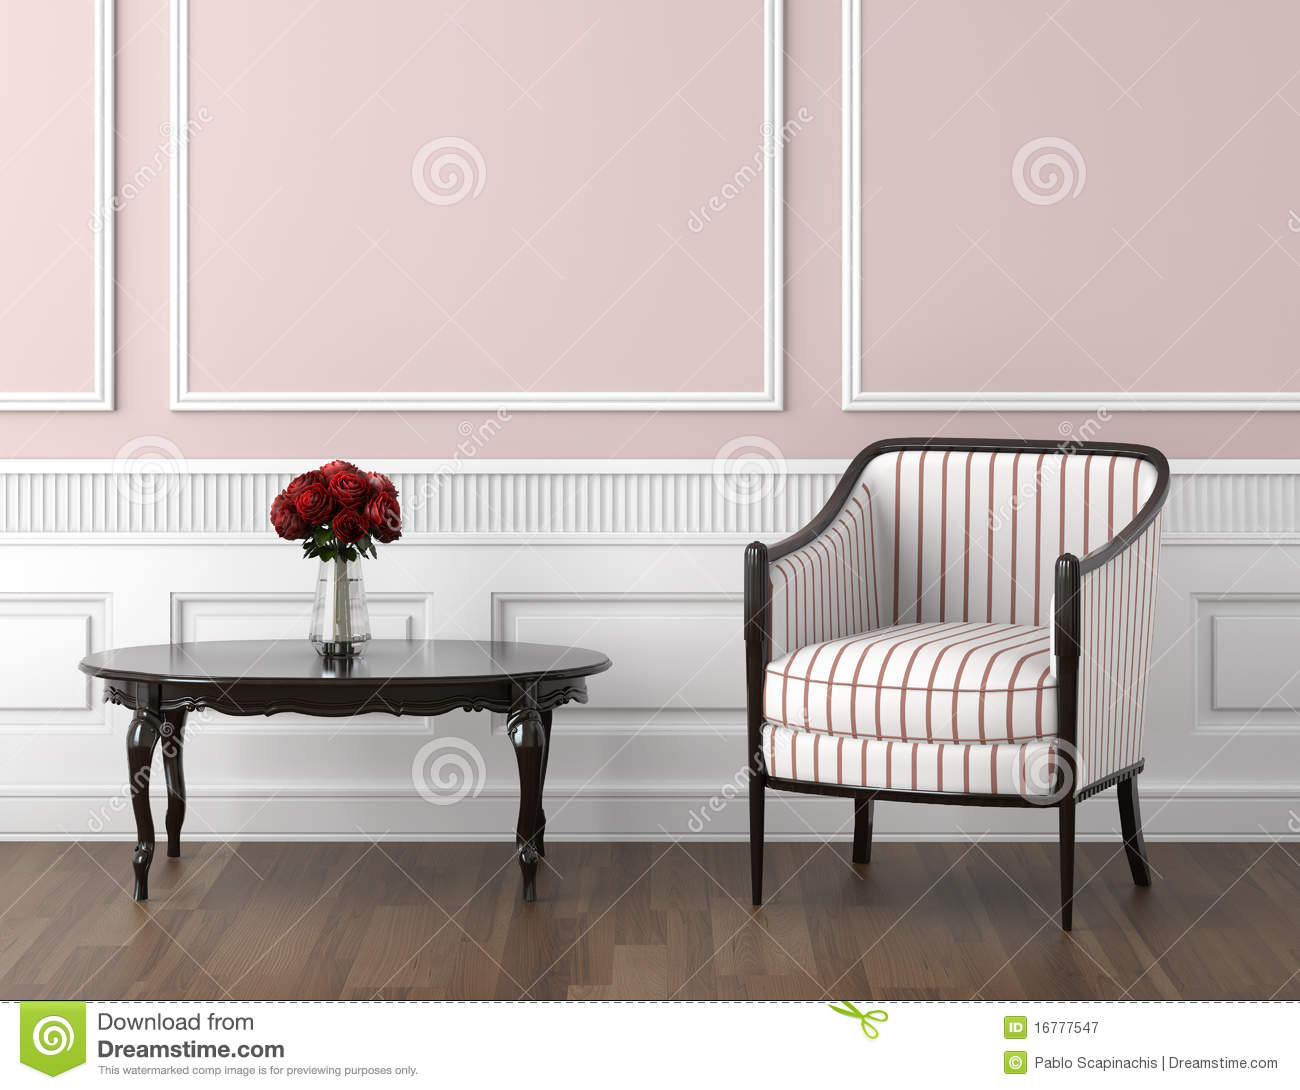 Classic Interior beige and white classic interior royalty free stock photos - image